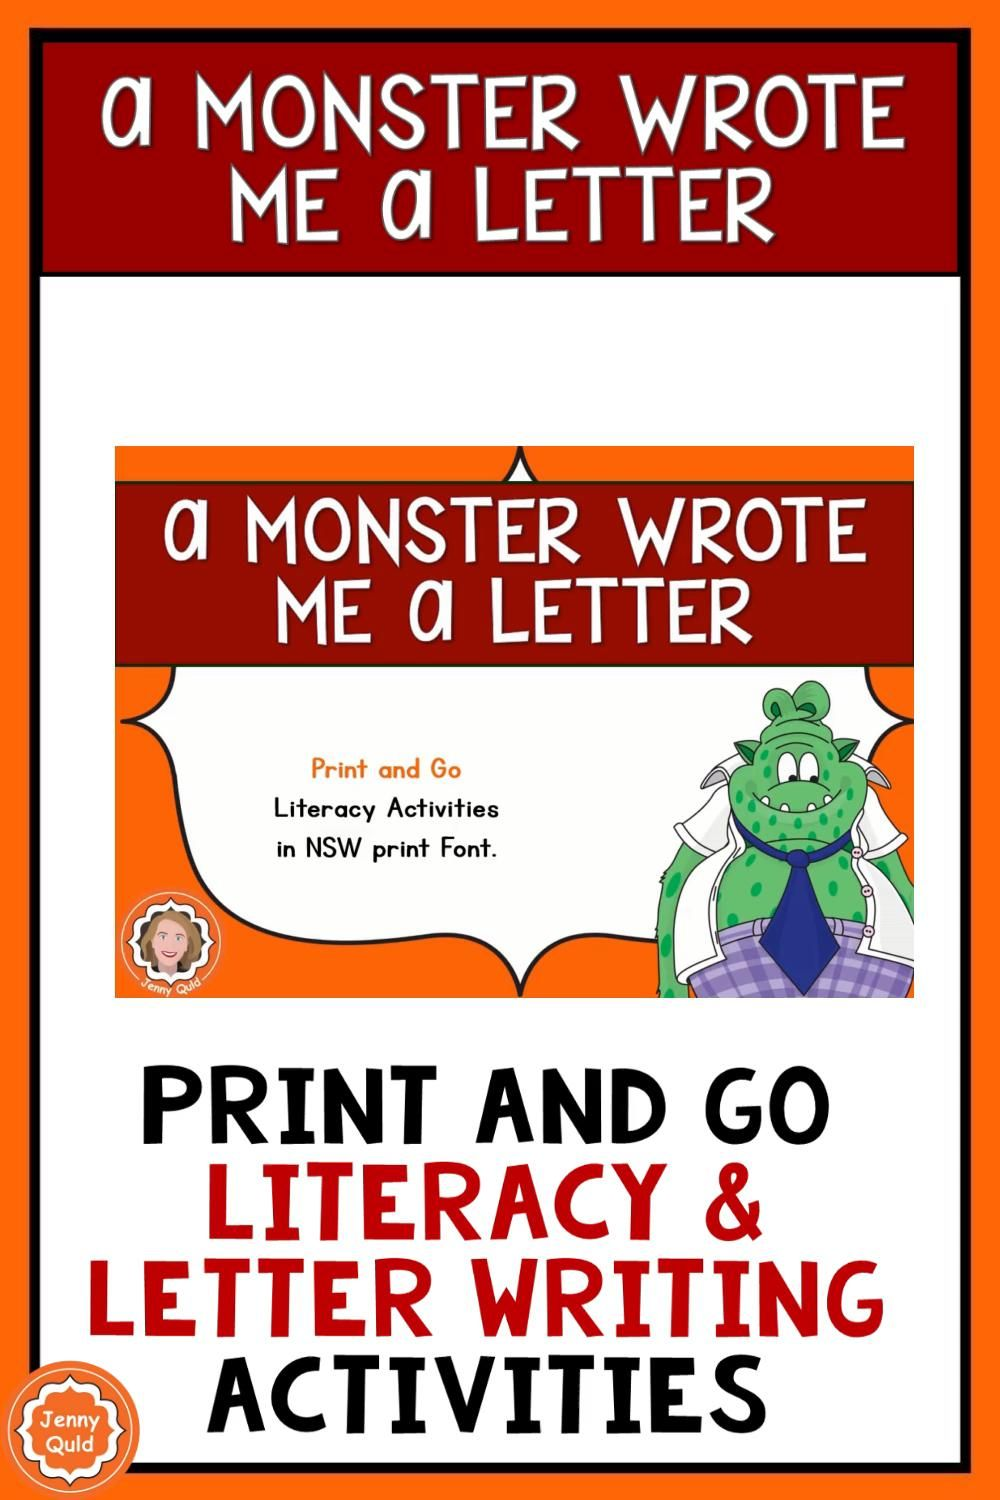 A Monster Wrote Me A Letter Literacy And Letter Writing Activities And Anchor Charts K Video Letter Writing Activities Writing Activities Letter Writing Anchor Chart [ 1500 x 1000 Pixel ]